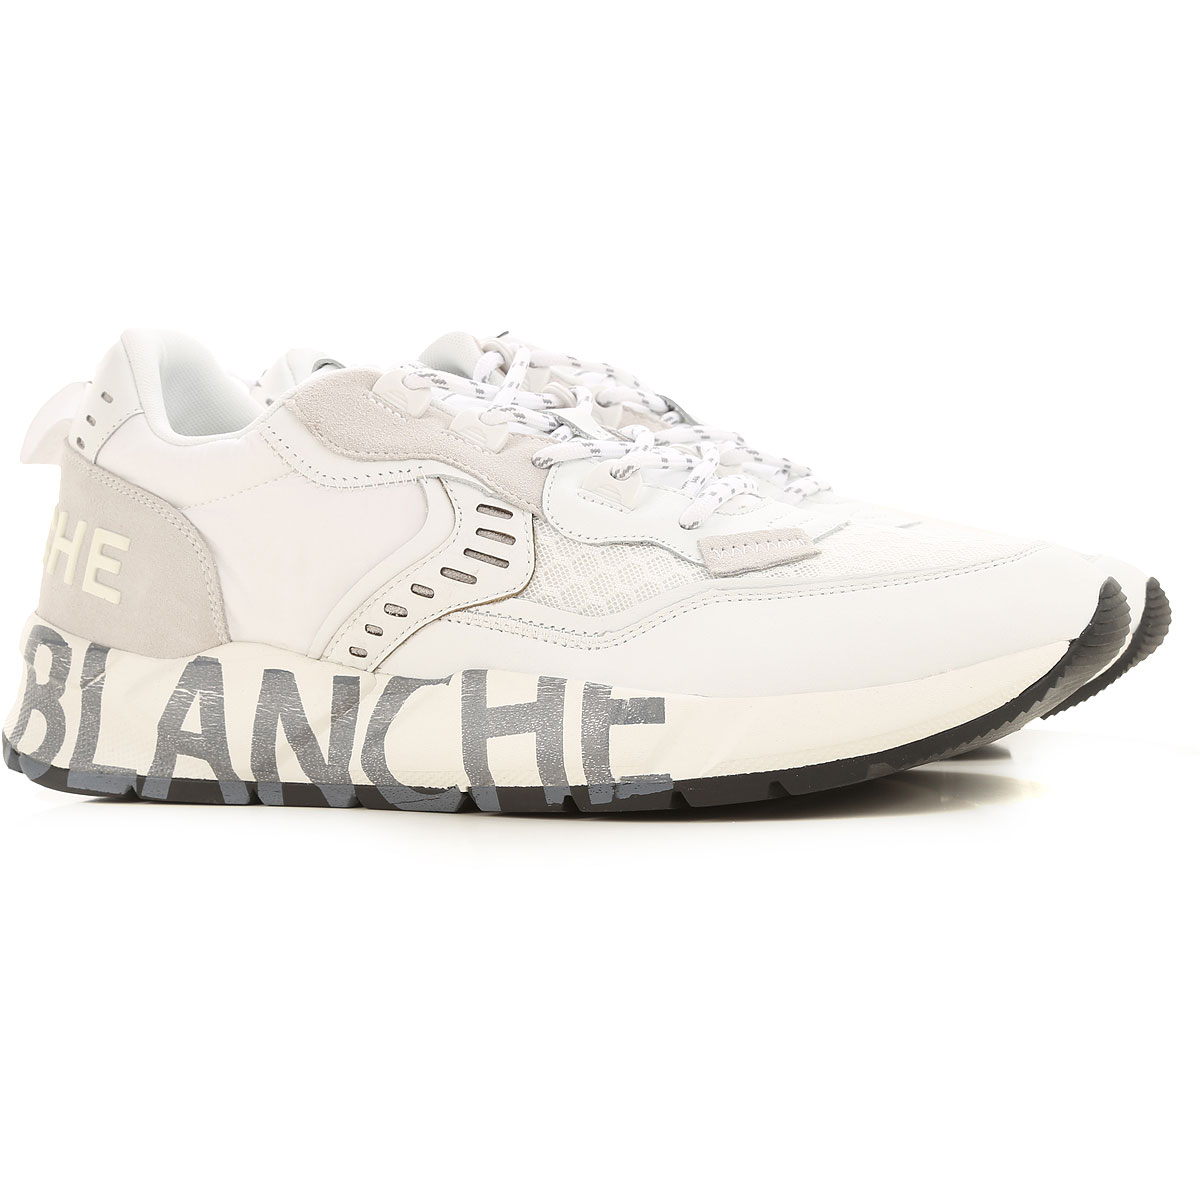 Voile Blanche Sneakers for Men On Sale, White, Canvas, 2019, 10 10.5 11.5